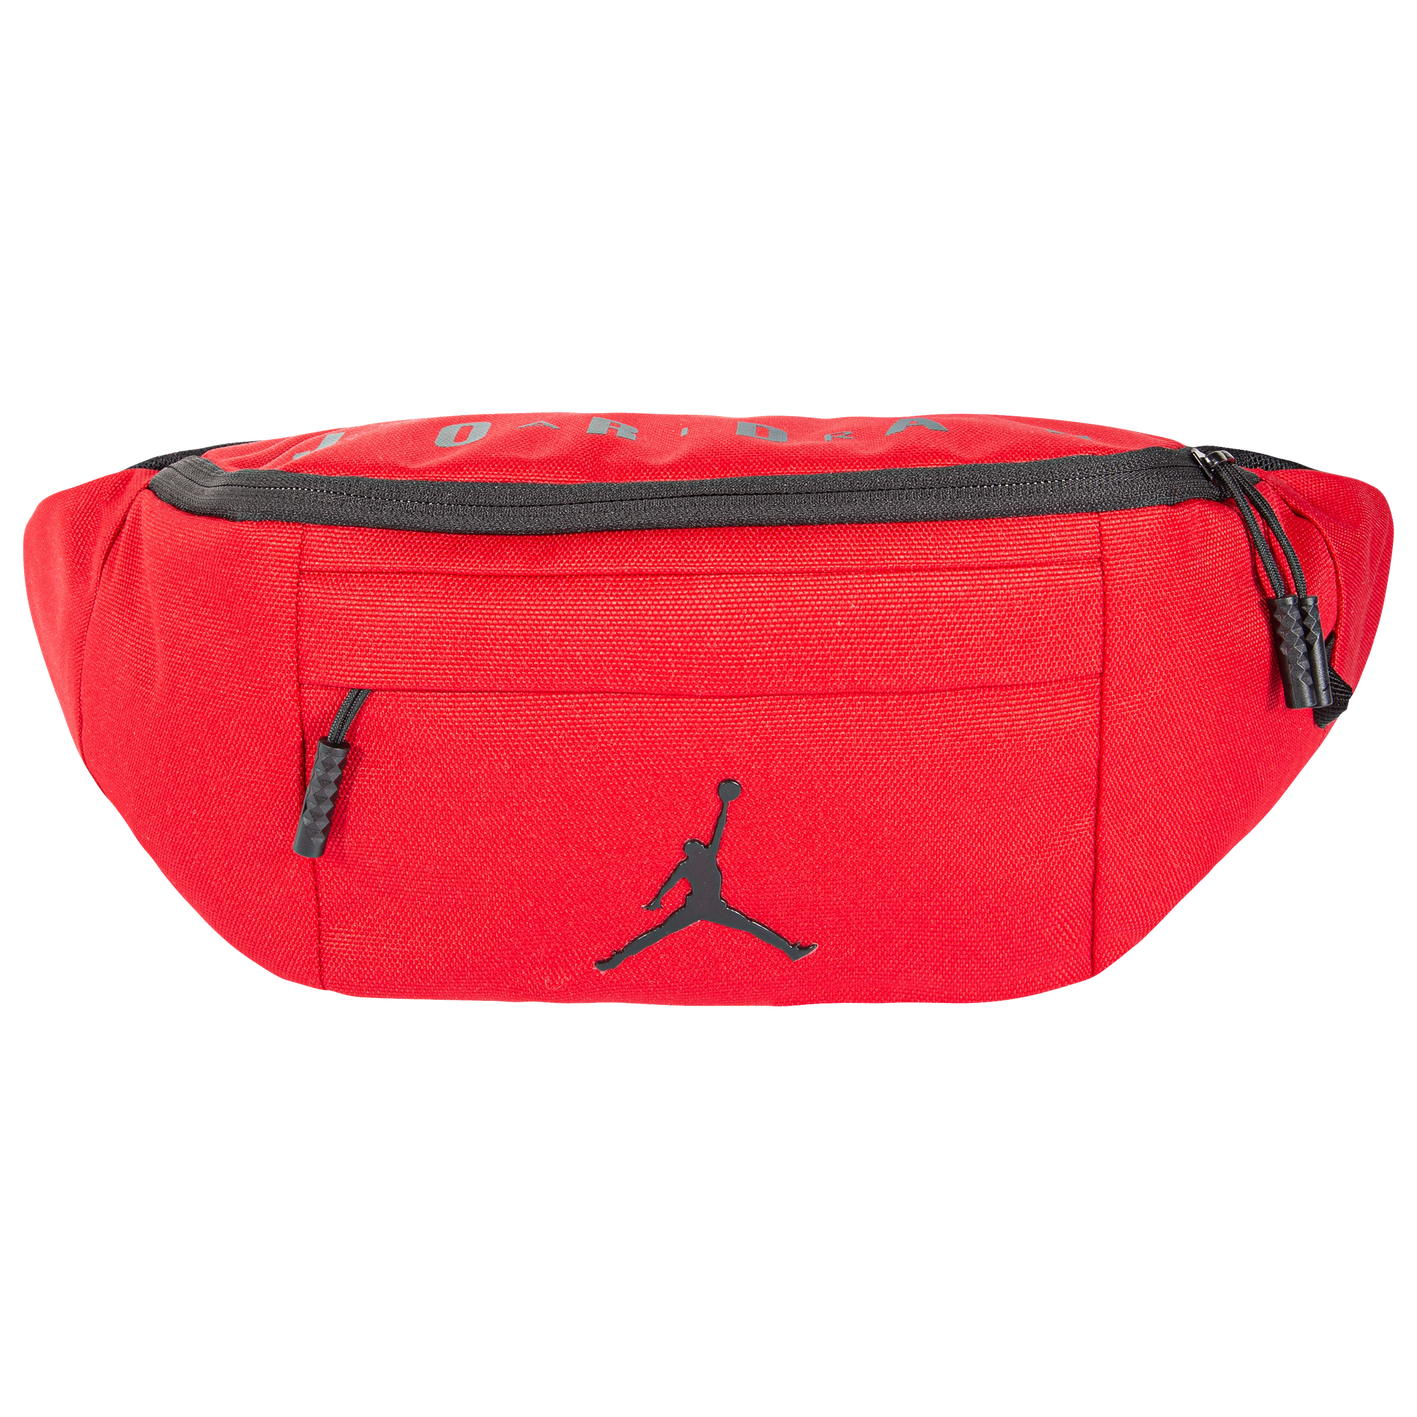 489dc96e094ee2 Jordan Jumpman Crossbody Bag - Basketball - Accessories - Gym Red ...